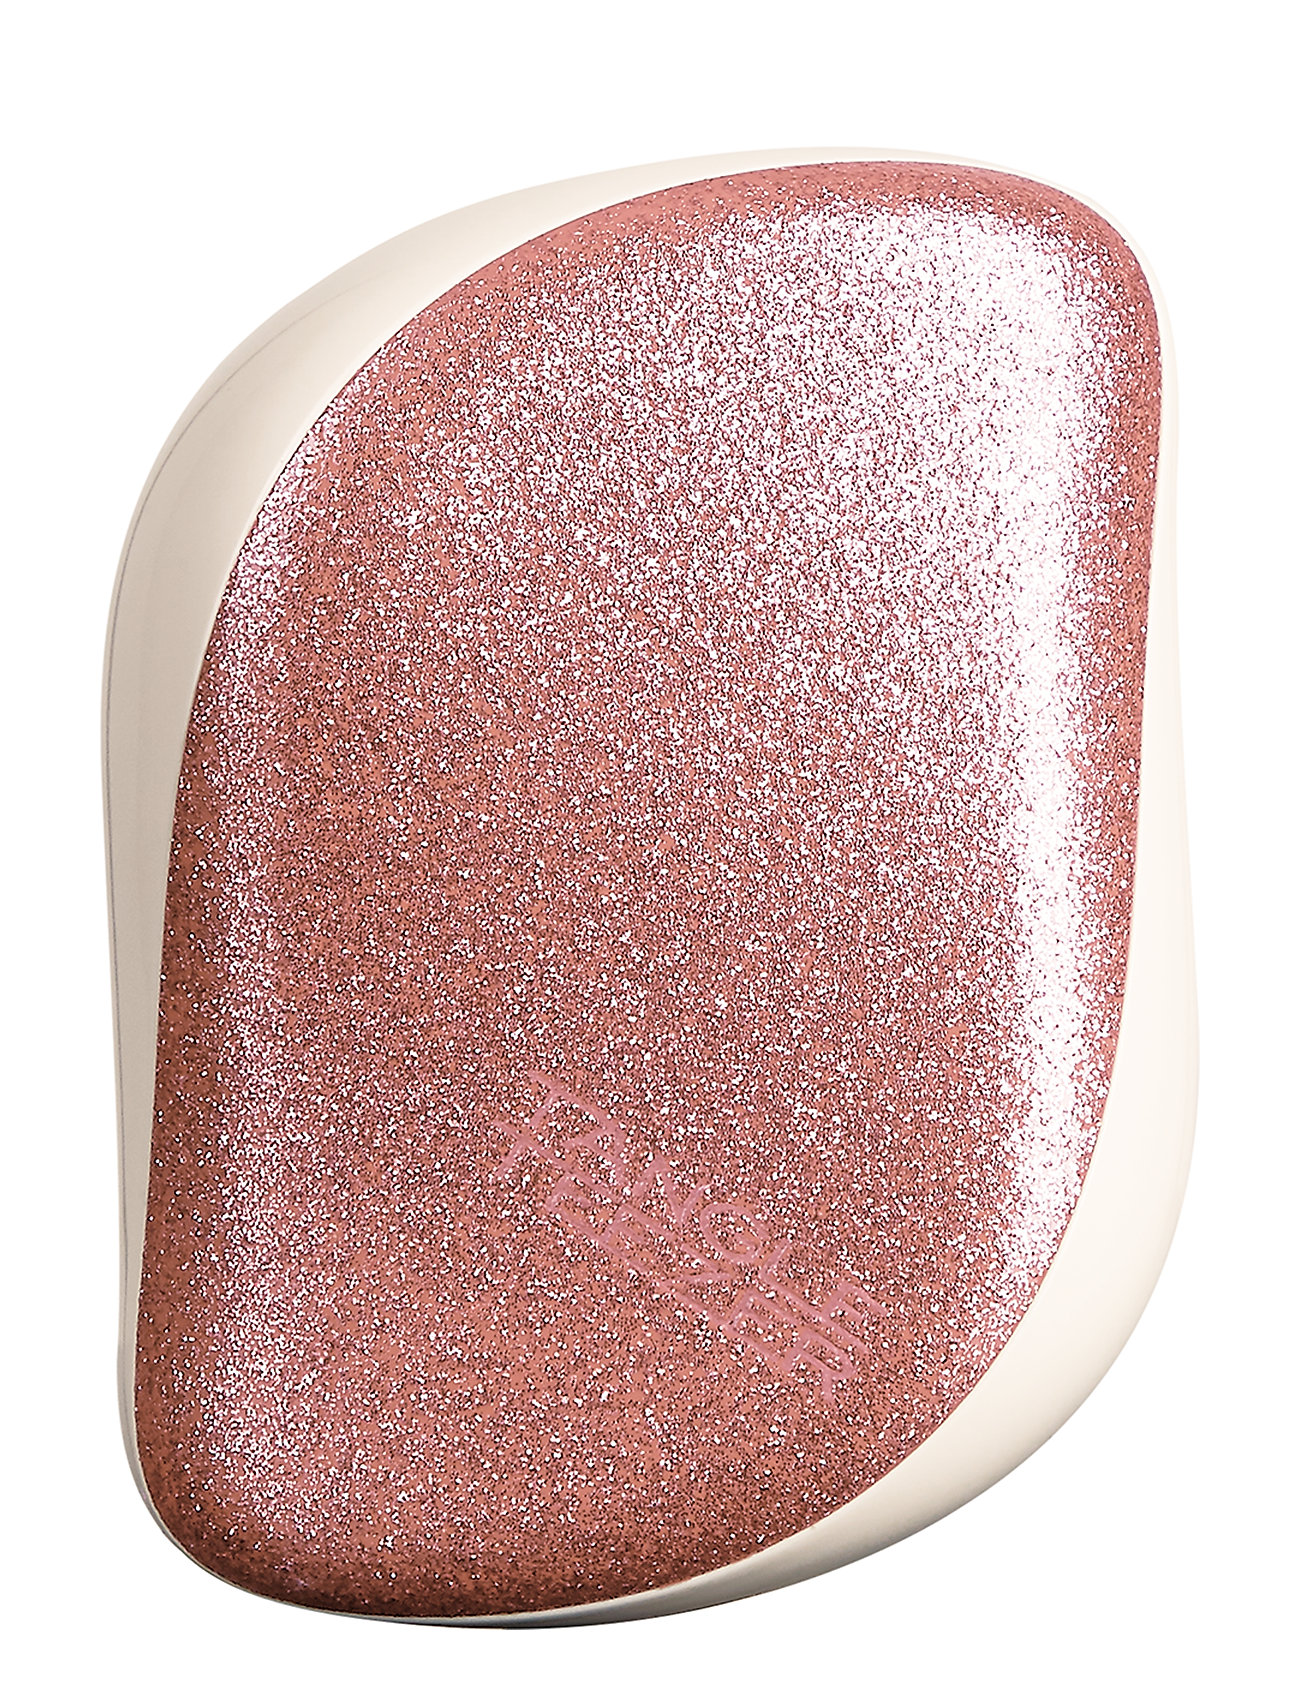 Tangle Teezer Tangle Teezer Compact Styler Rose Gold Glitter - NO COLOUR